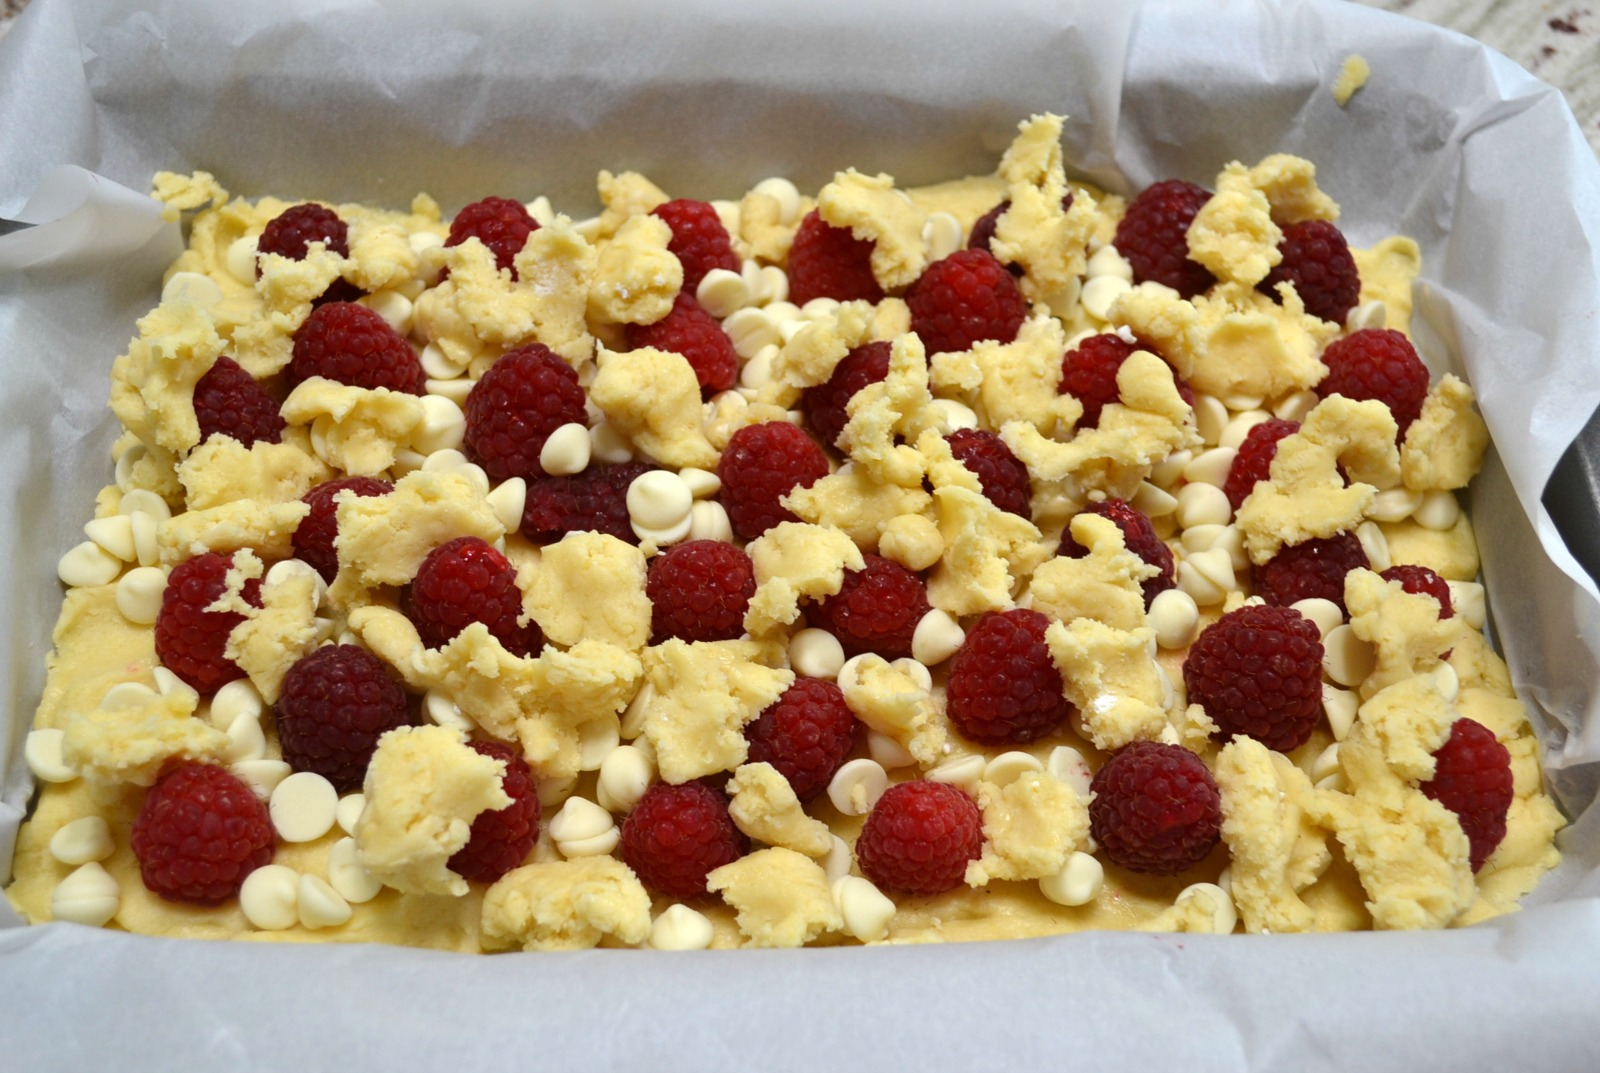 Raspberry White Chocolate Cake Bars are an easy to make, decadent dessert.